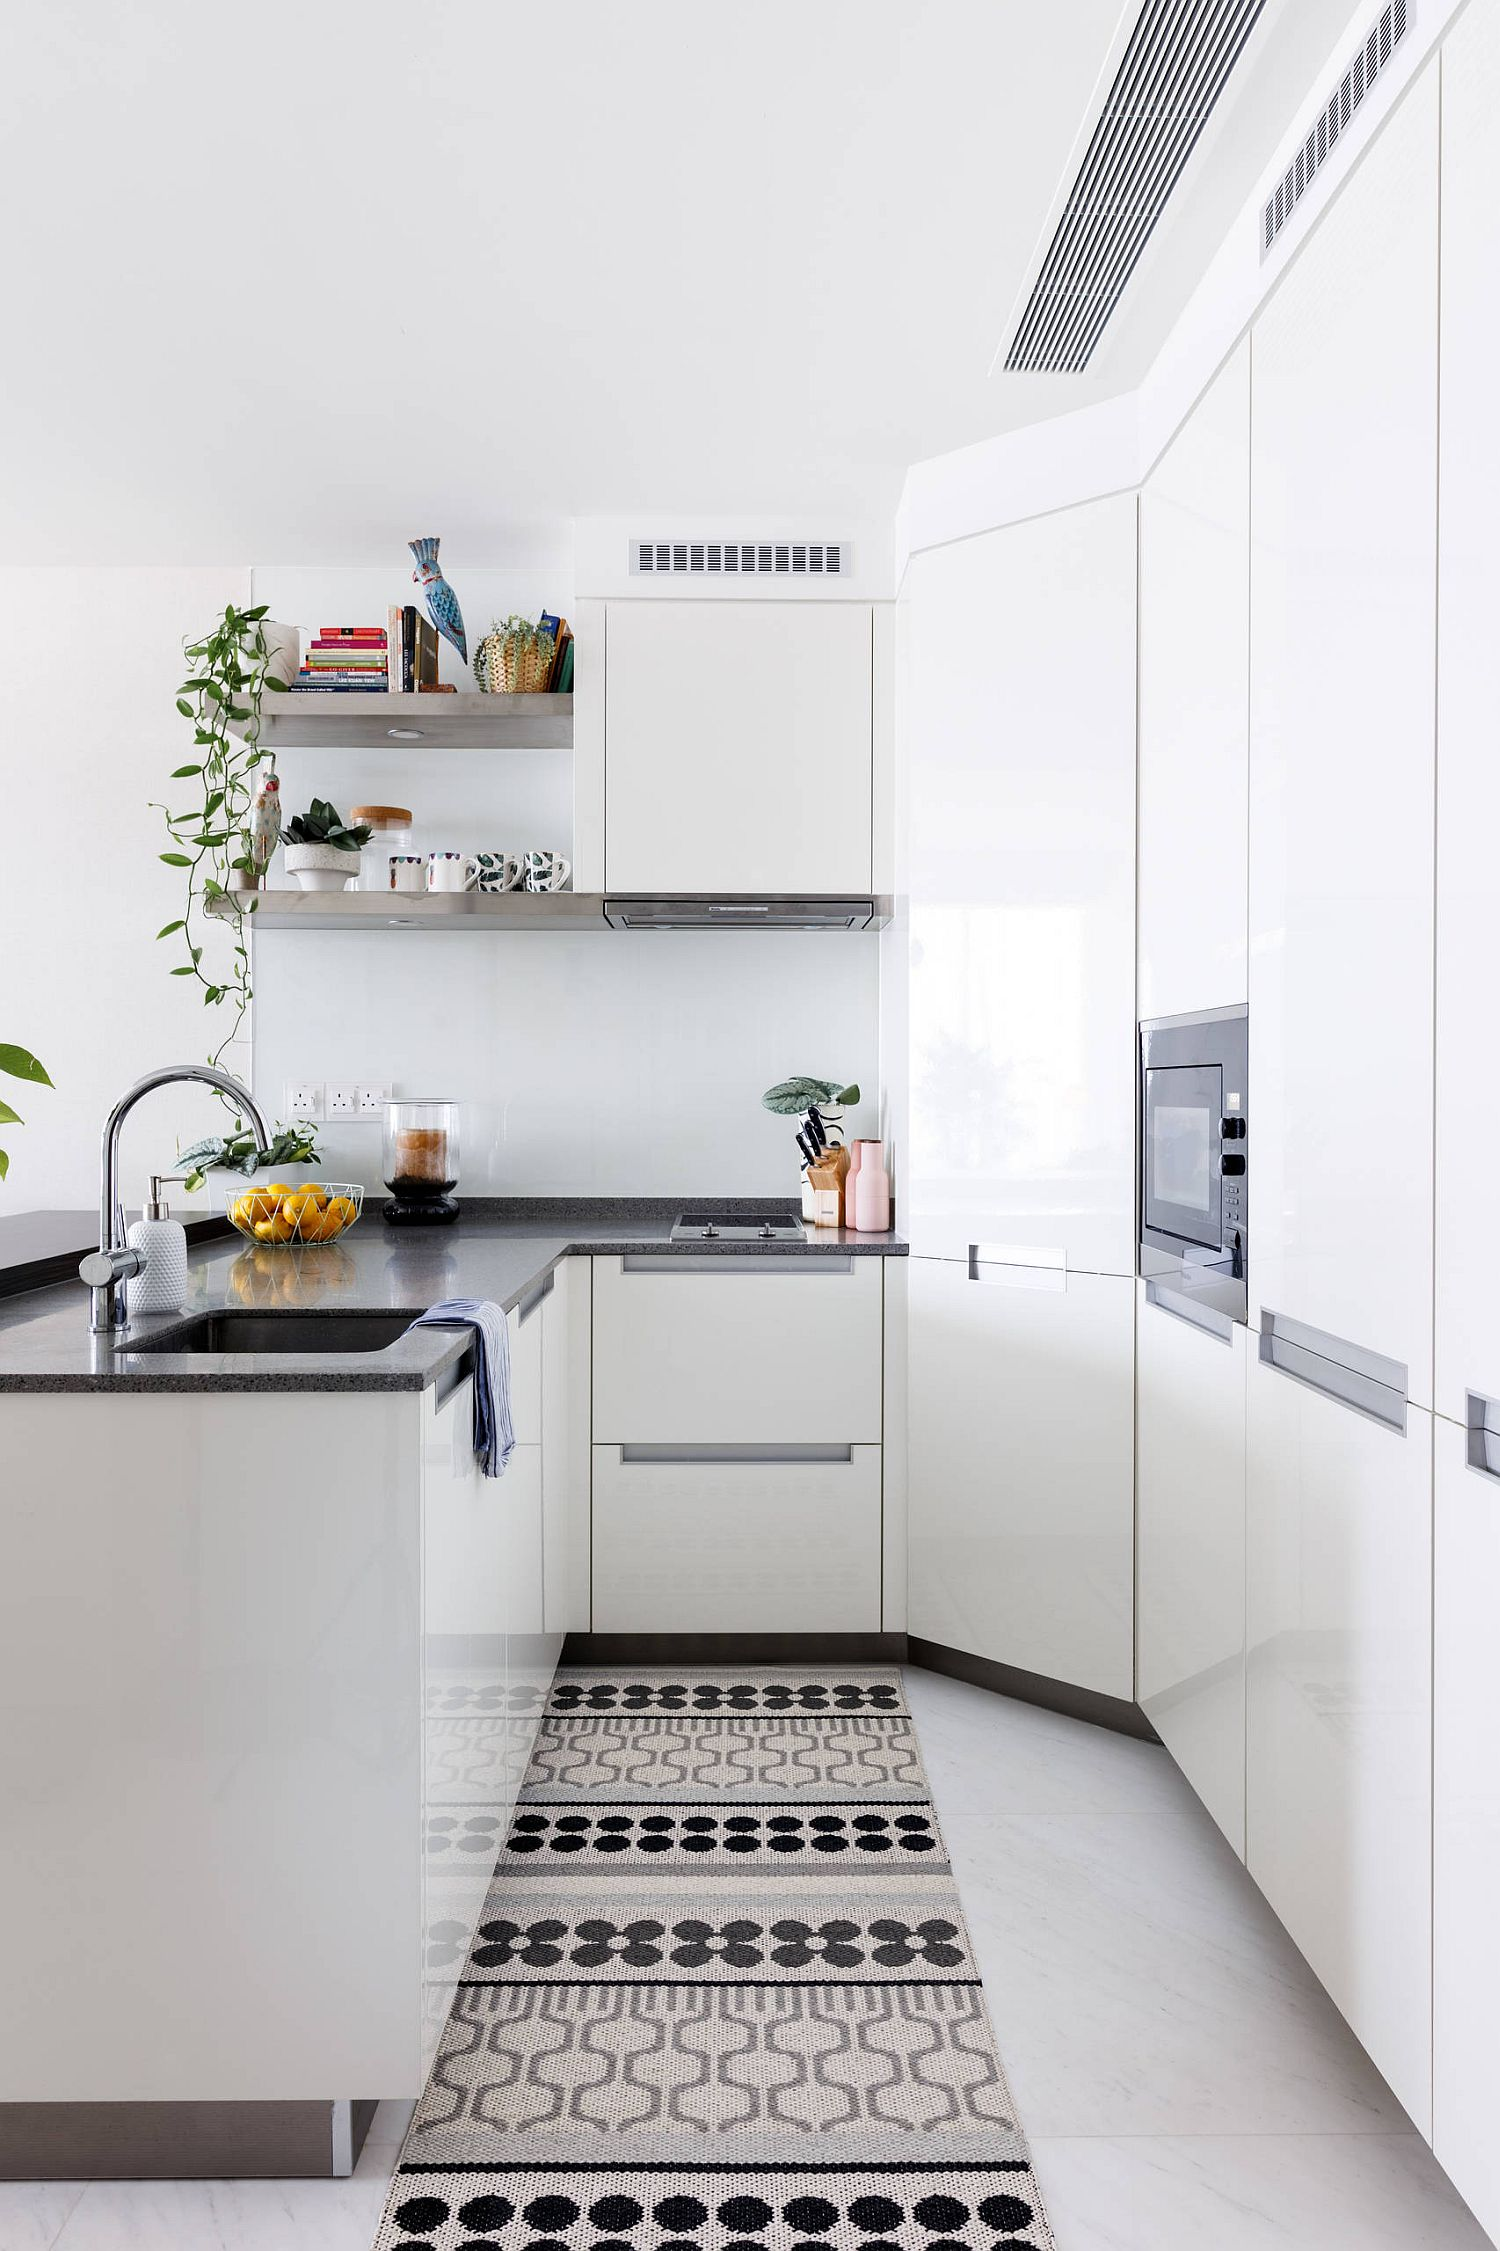 Space-savvy tiny kitchen in white with modern Scandinavian style